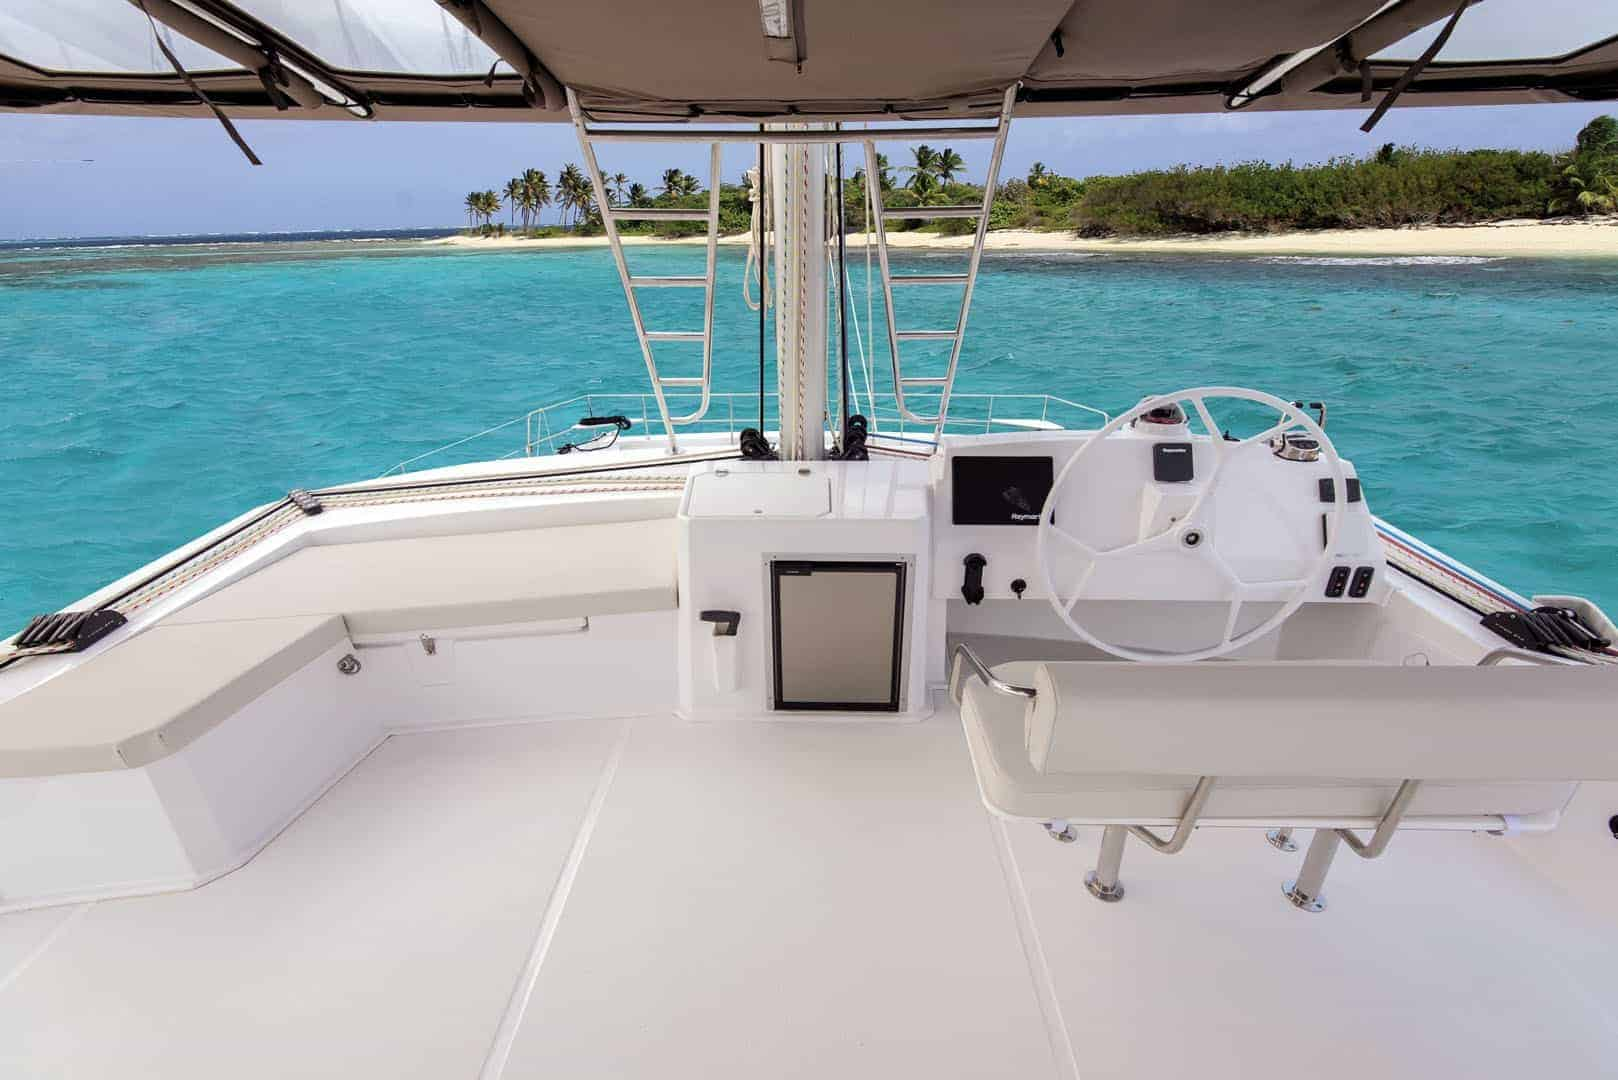 View on a tropical island from the Bali 5.4's beautiful flybridge